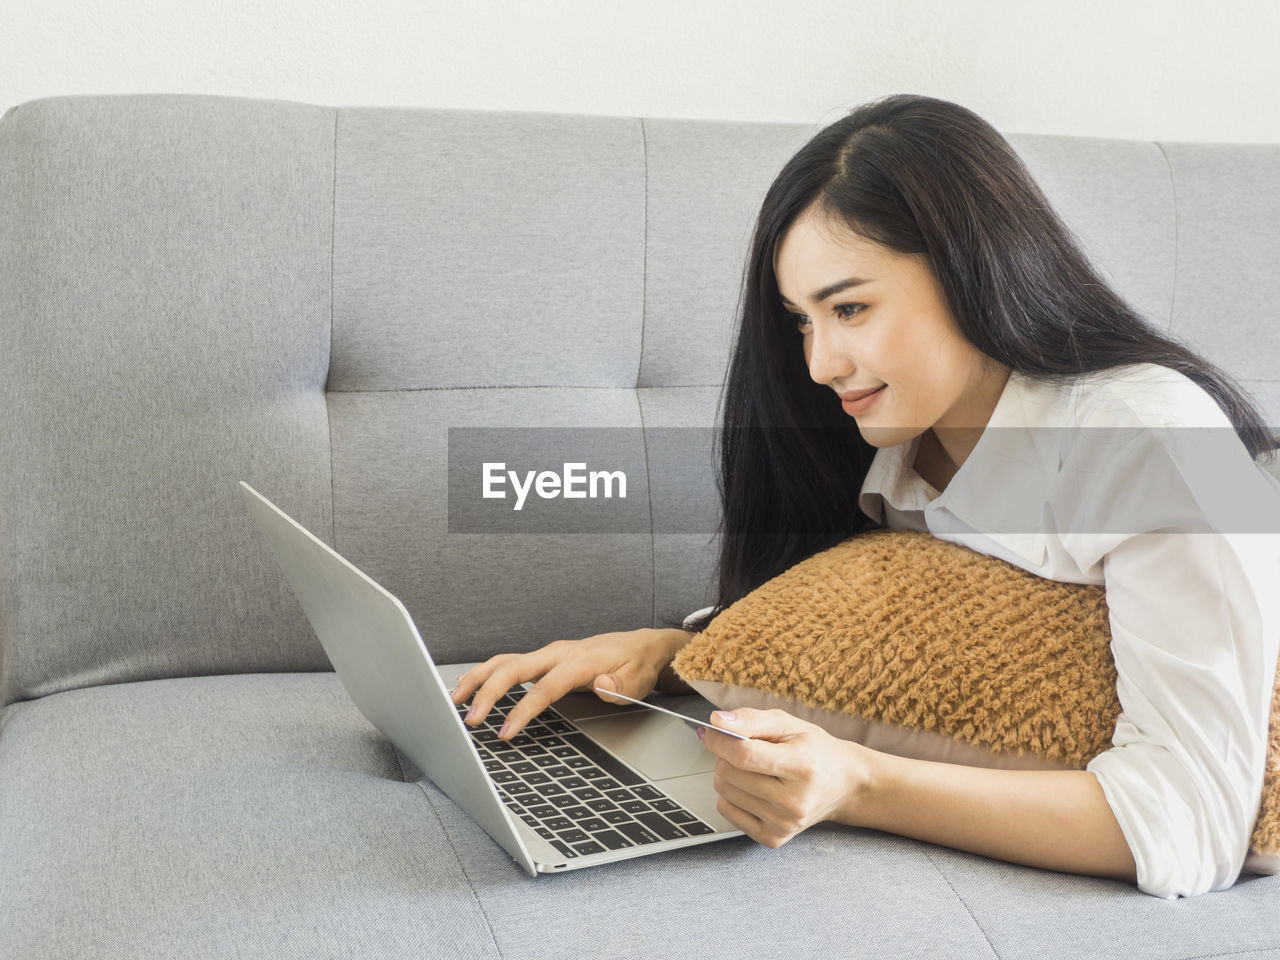 wireless technology, laptop, computer, one person, technology, using laptop, connection, real people, indoors, sitting, communication, women, young women, lifestyles, sofa, furniture, young adult, adult, internet, hair, hairstyle, beautiful woman, surfing the net